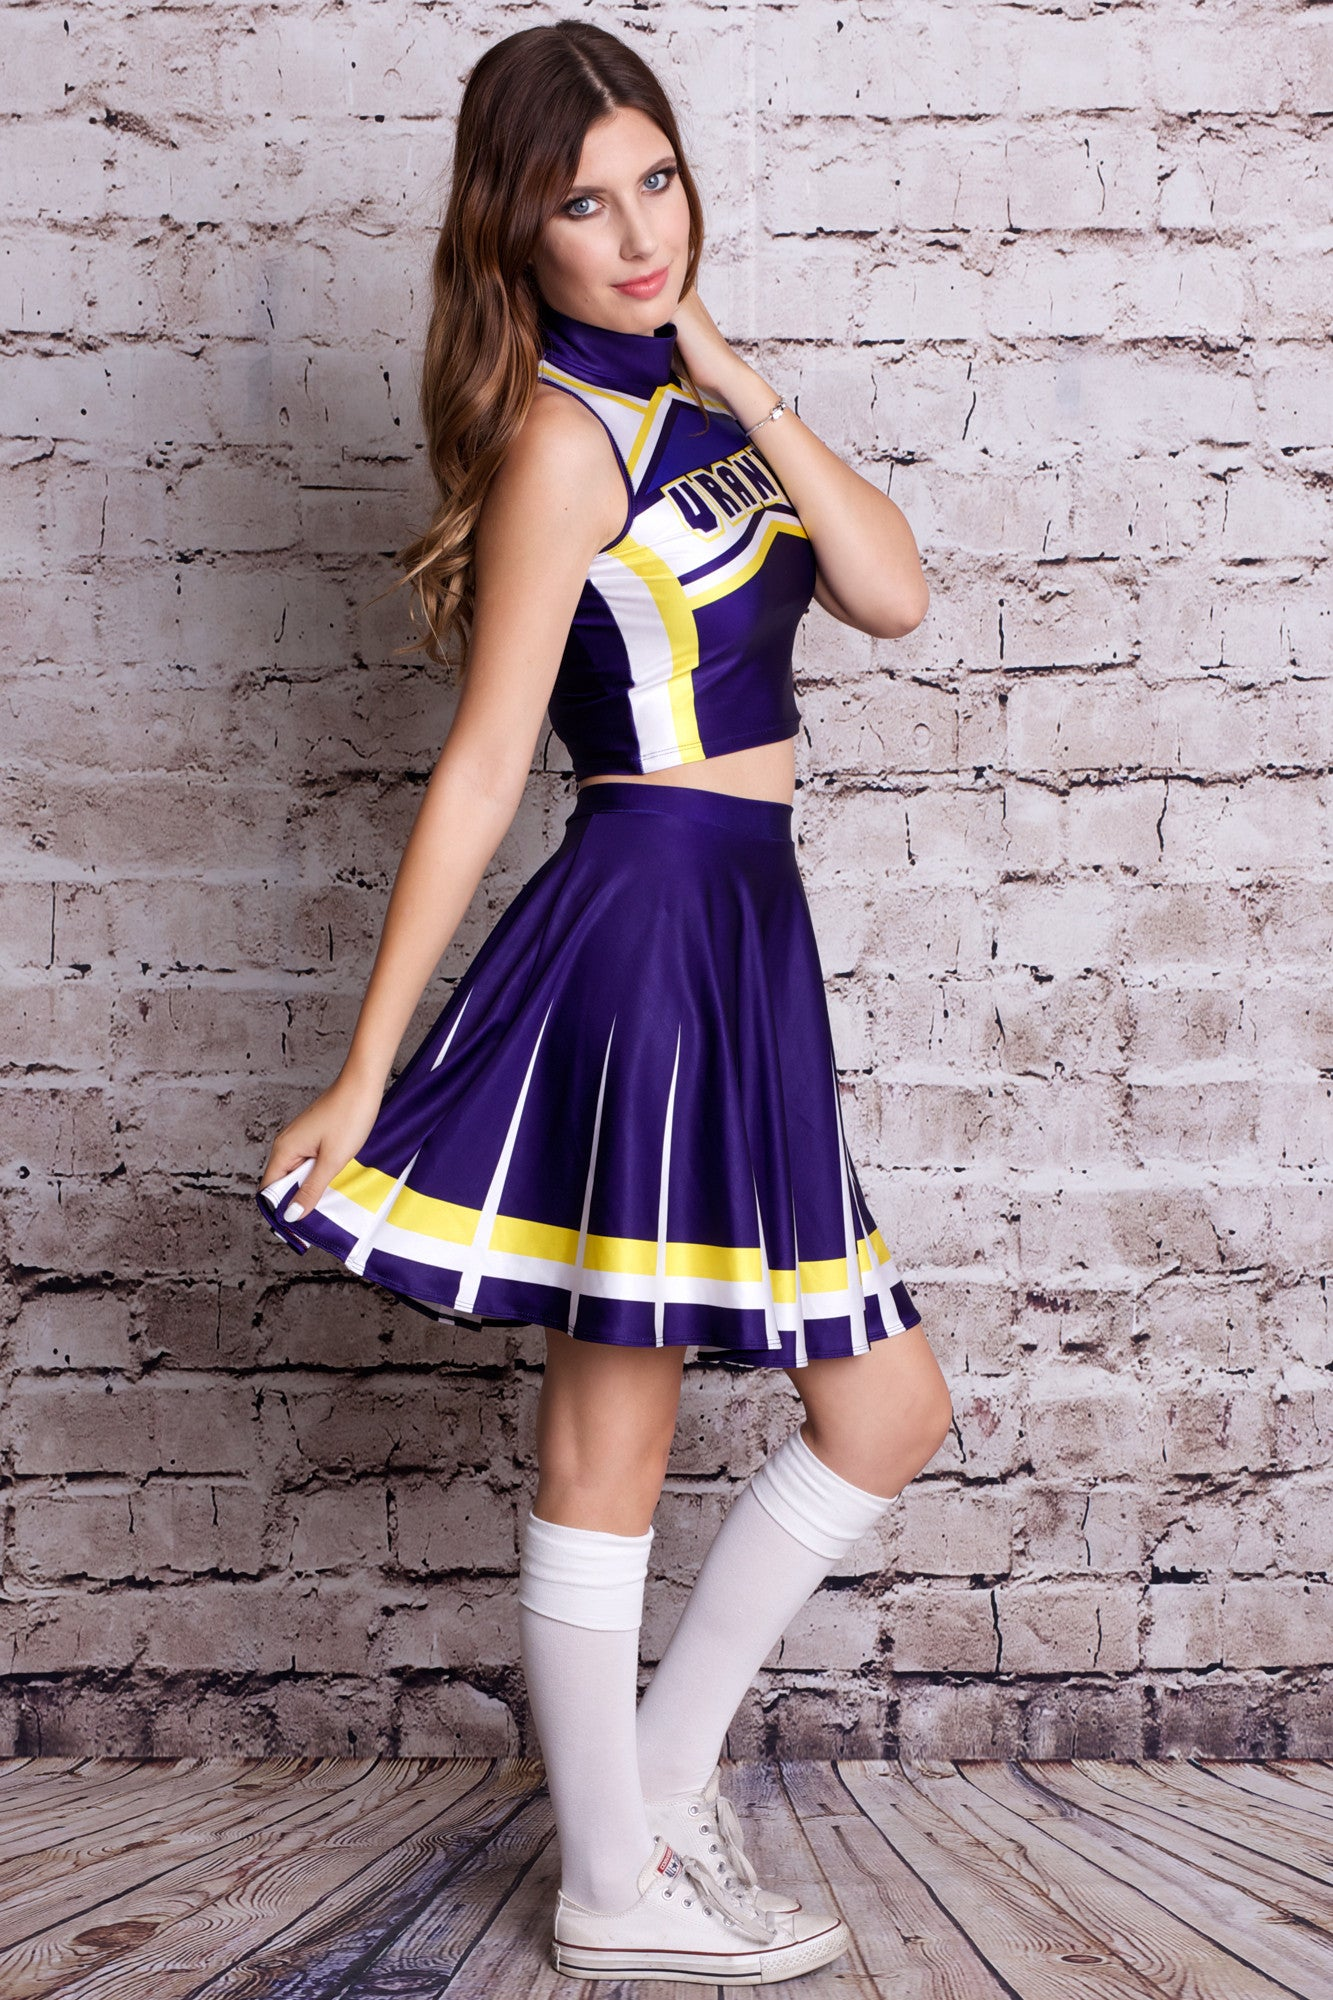 Uranus Cosplay Cheerleader Uniform